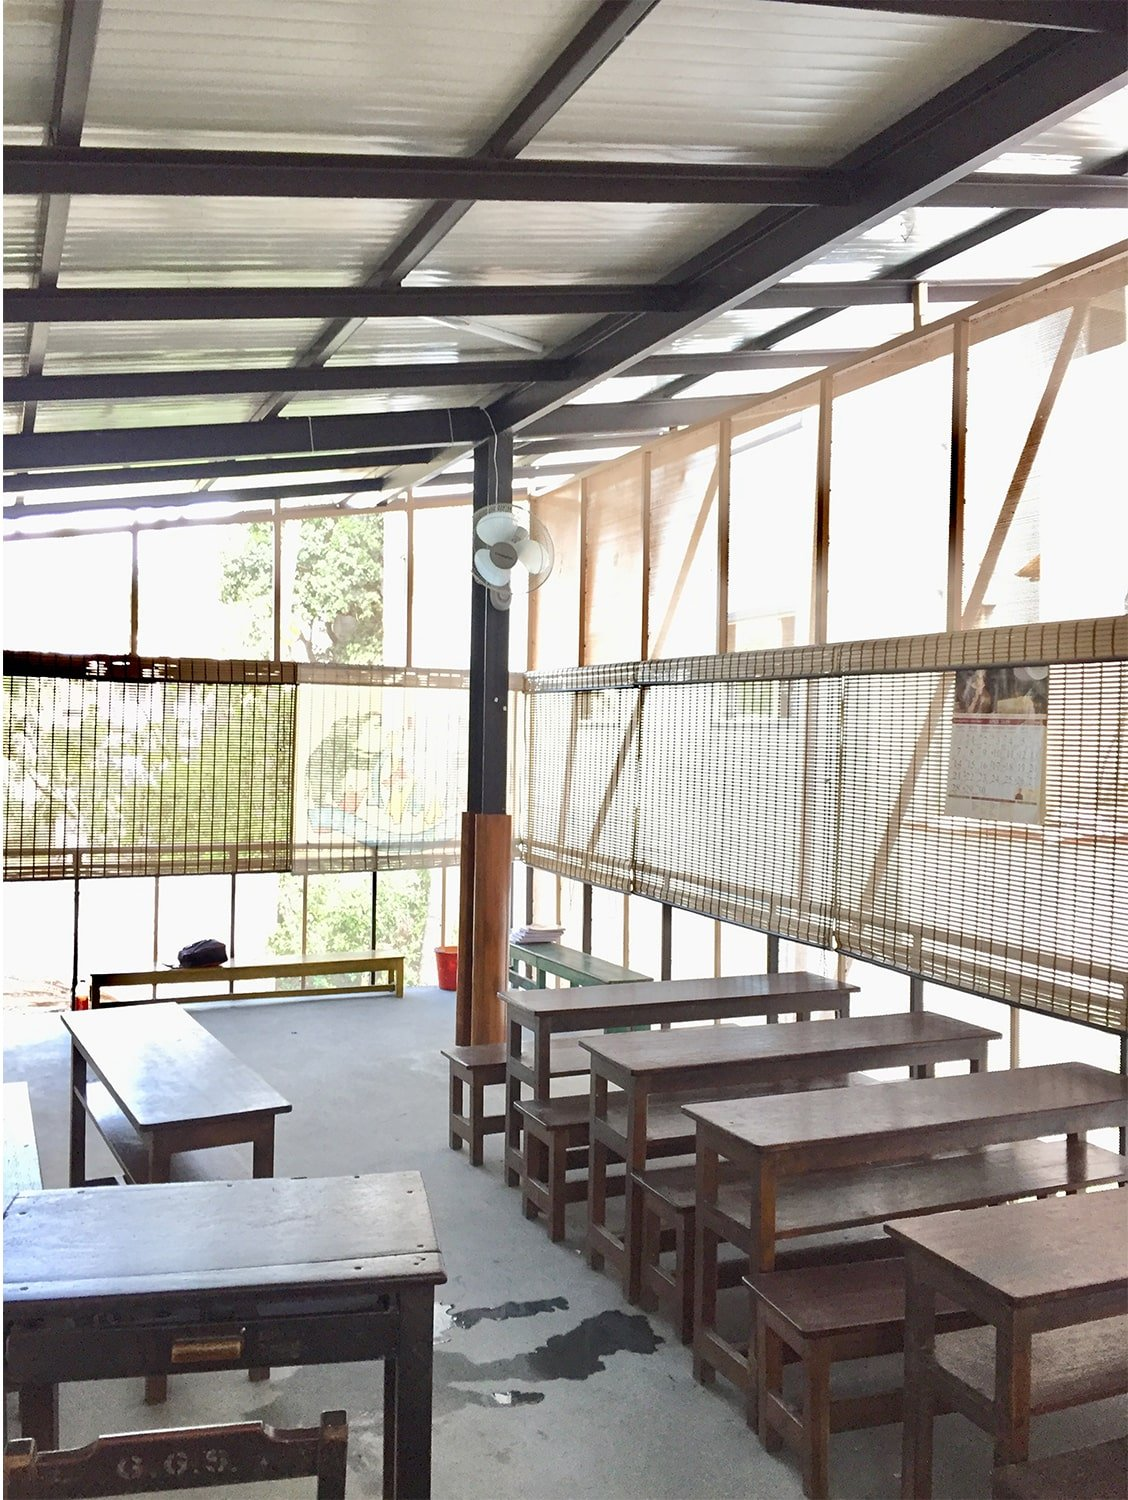 Classroom at first floor Soumitro Ghosh